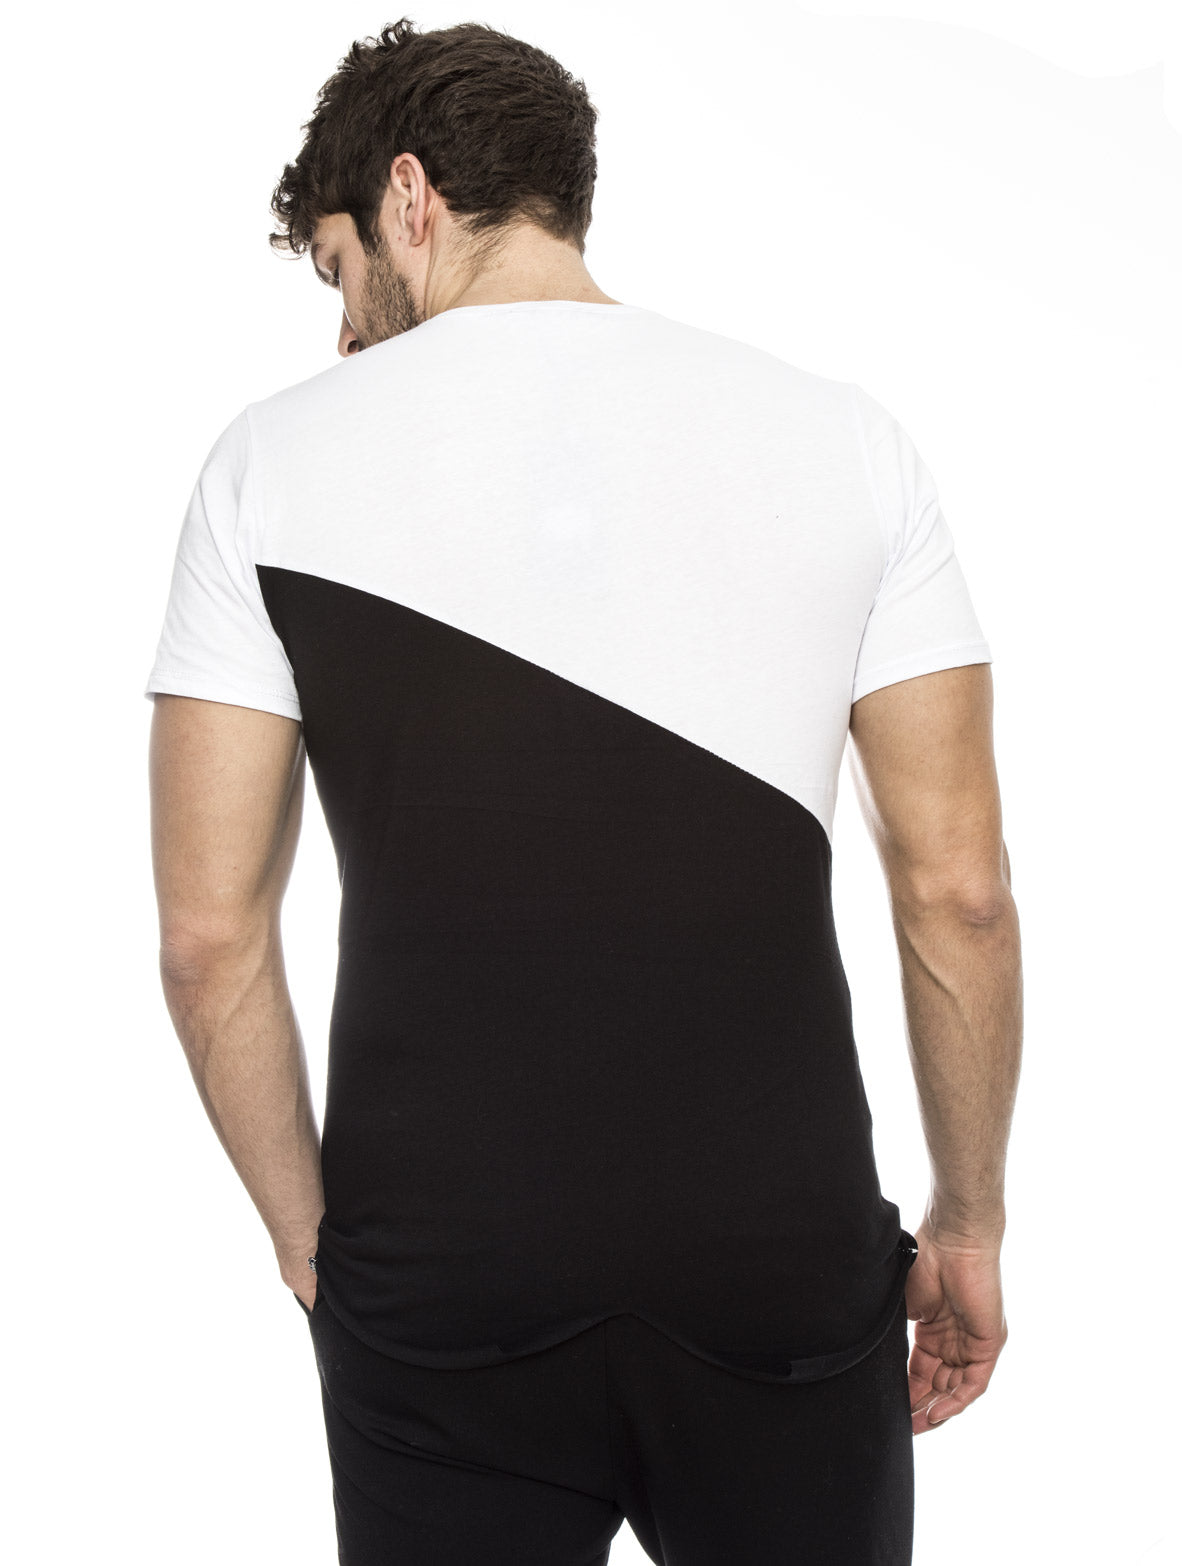 SENECTUS COTTON T-SHIRT IN BLACK AND WHITE